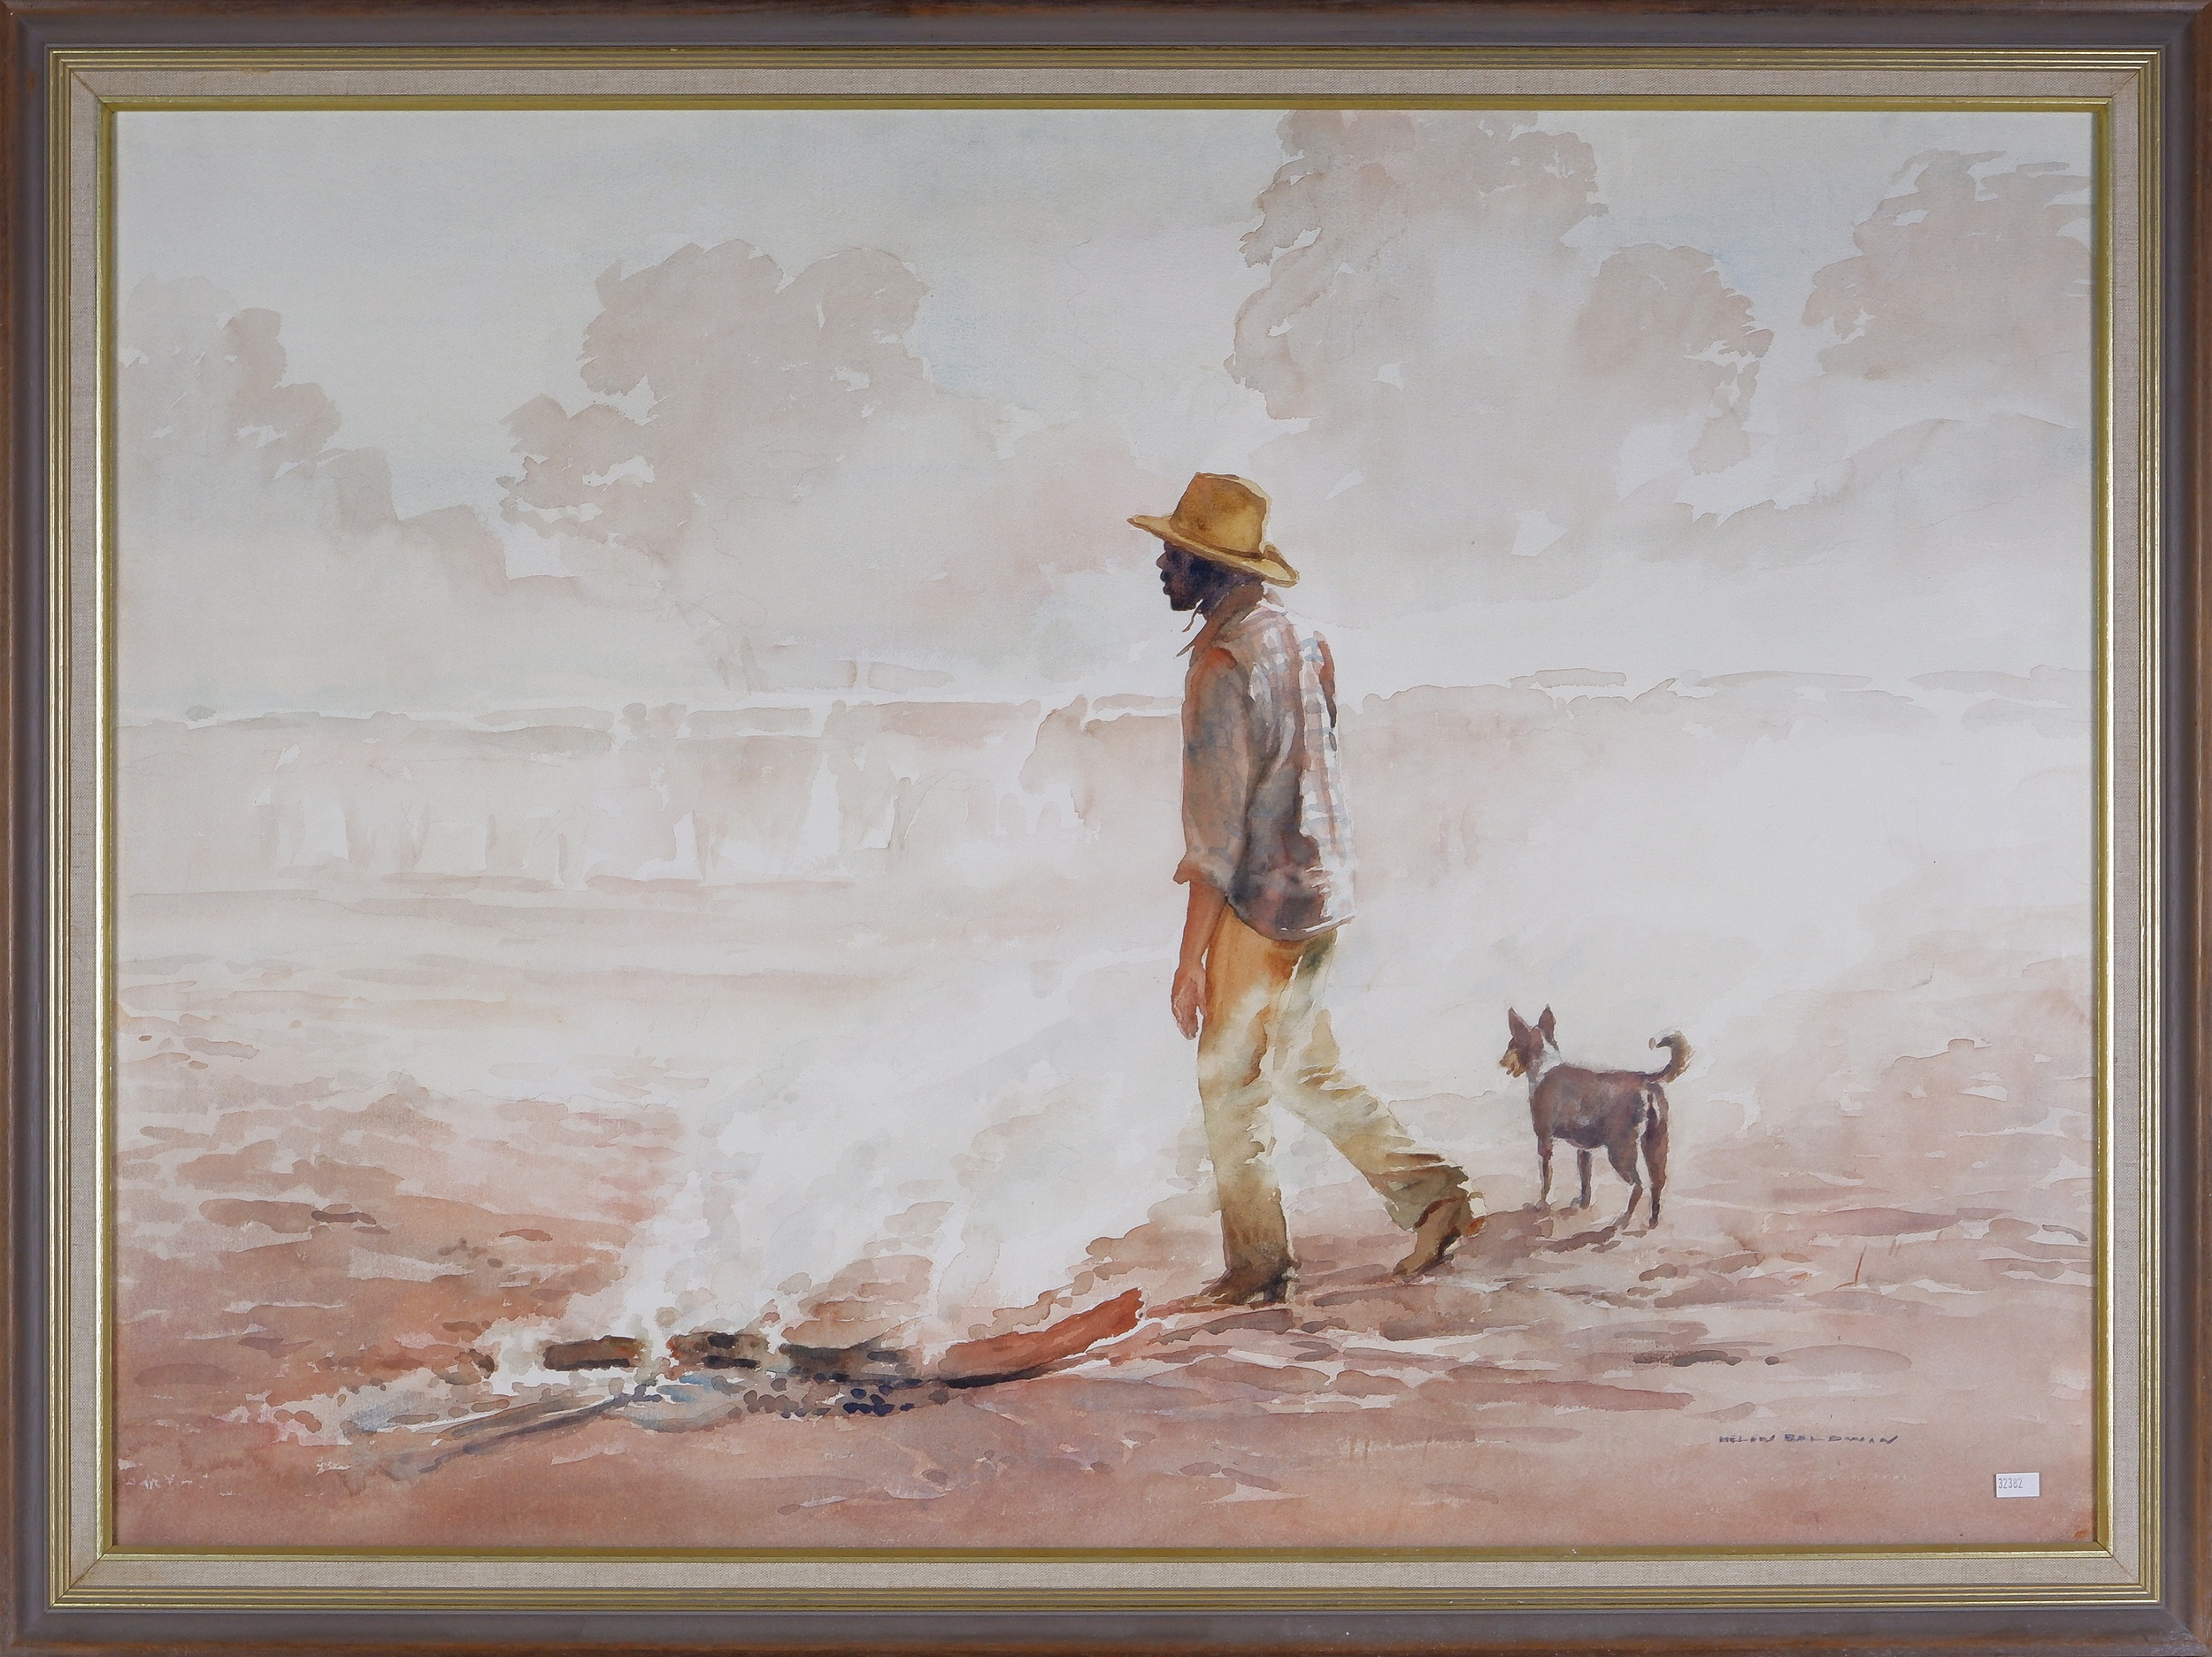 'Helen Baldwin (1912-2016), End of a Day, Napperby Station, N.T., Watercolour'